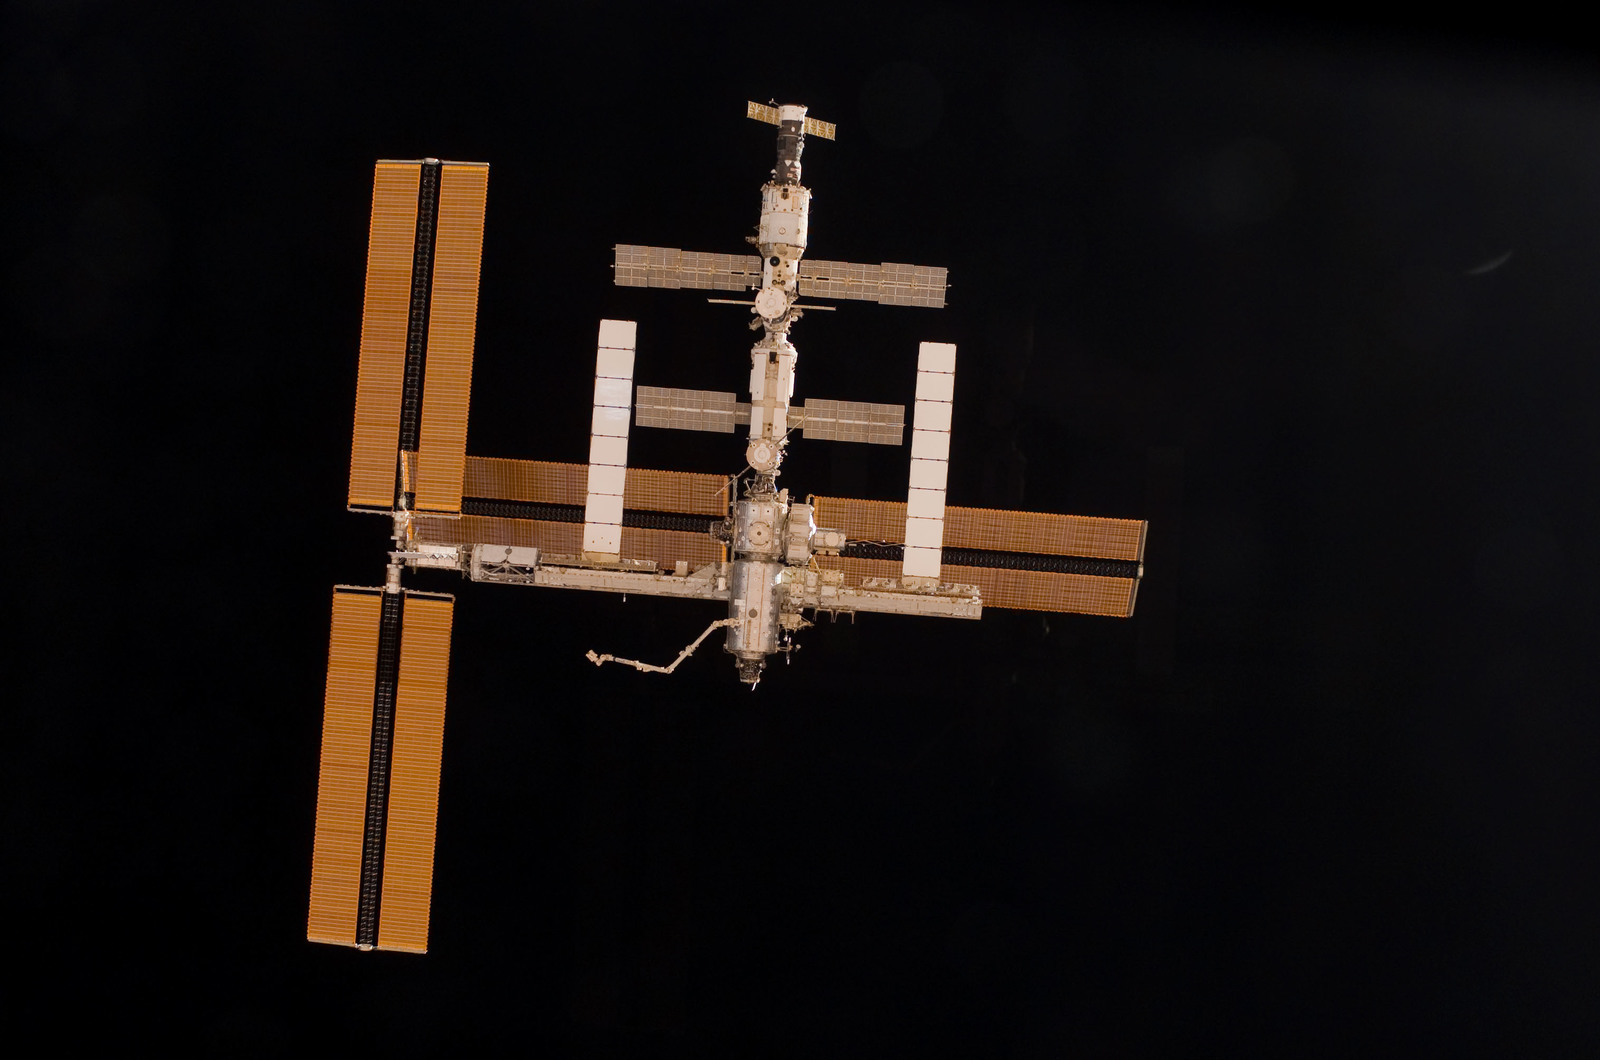 S115E06725 - STS-115 - Overall exterior view of the ISS during undocking and Flyaround Operations for STS-115 Space Shuttle Atlantis